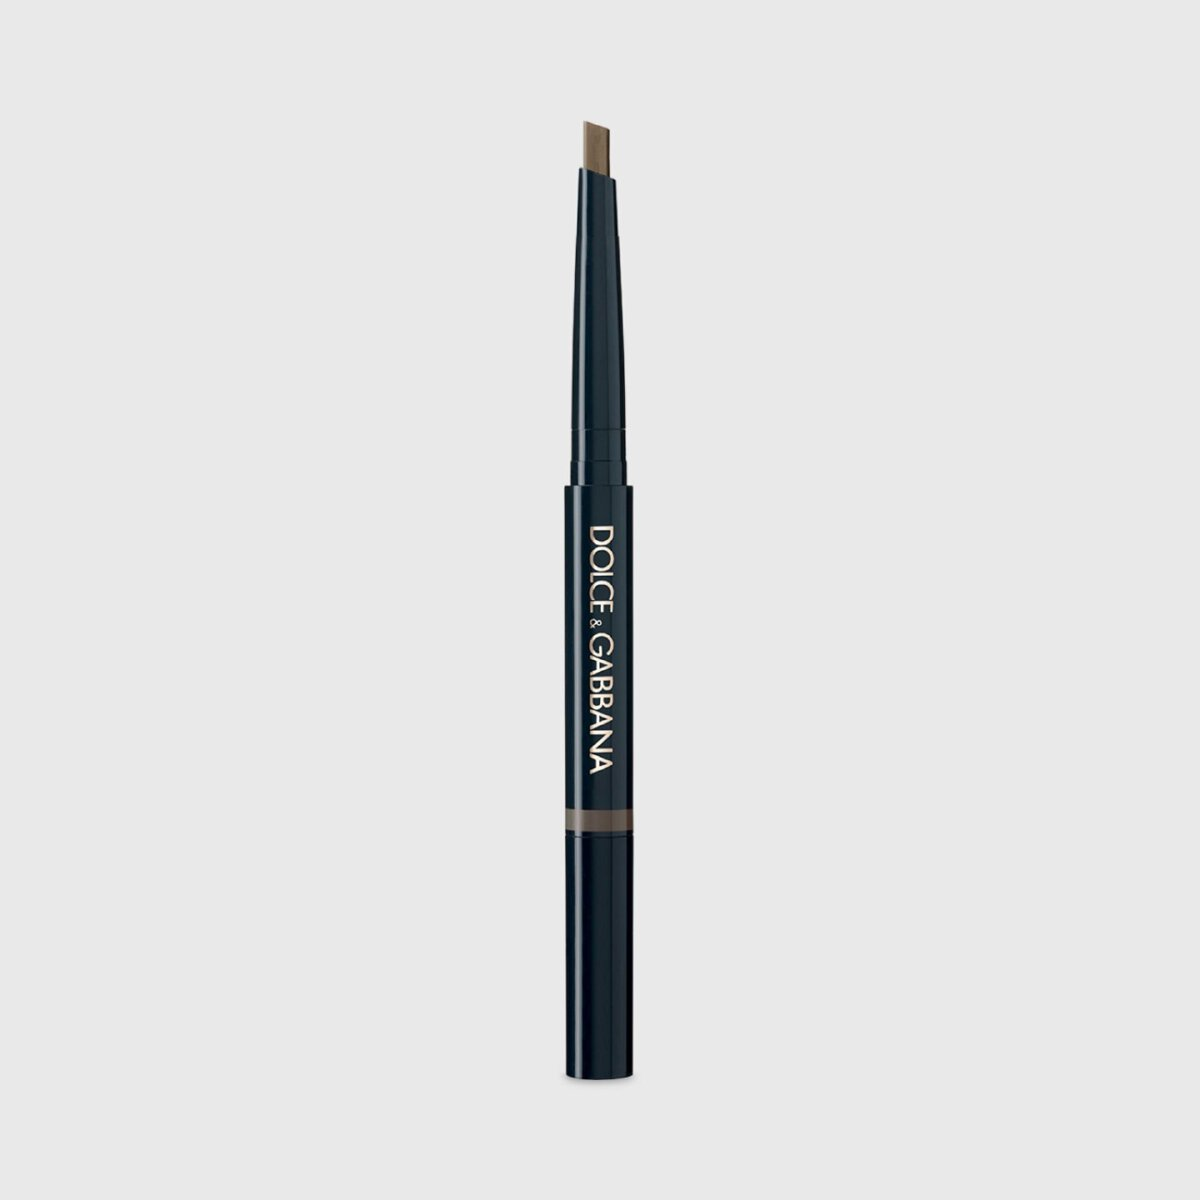 Dolce&Gabbana Shaping Eyebrow Pencil The Brow Liner